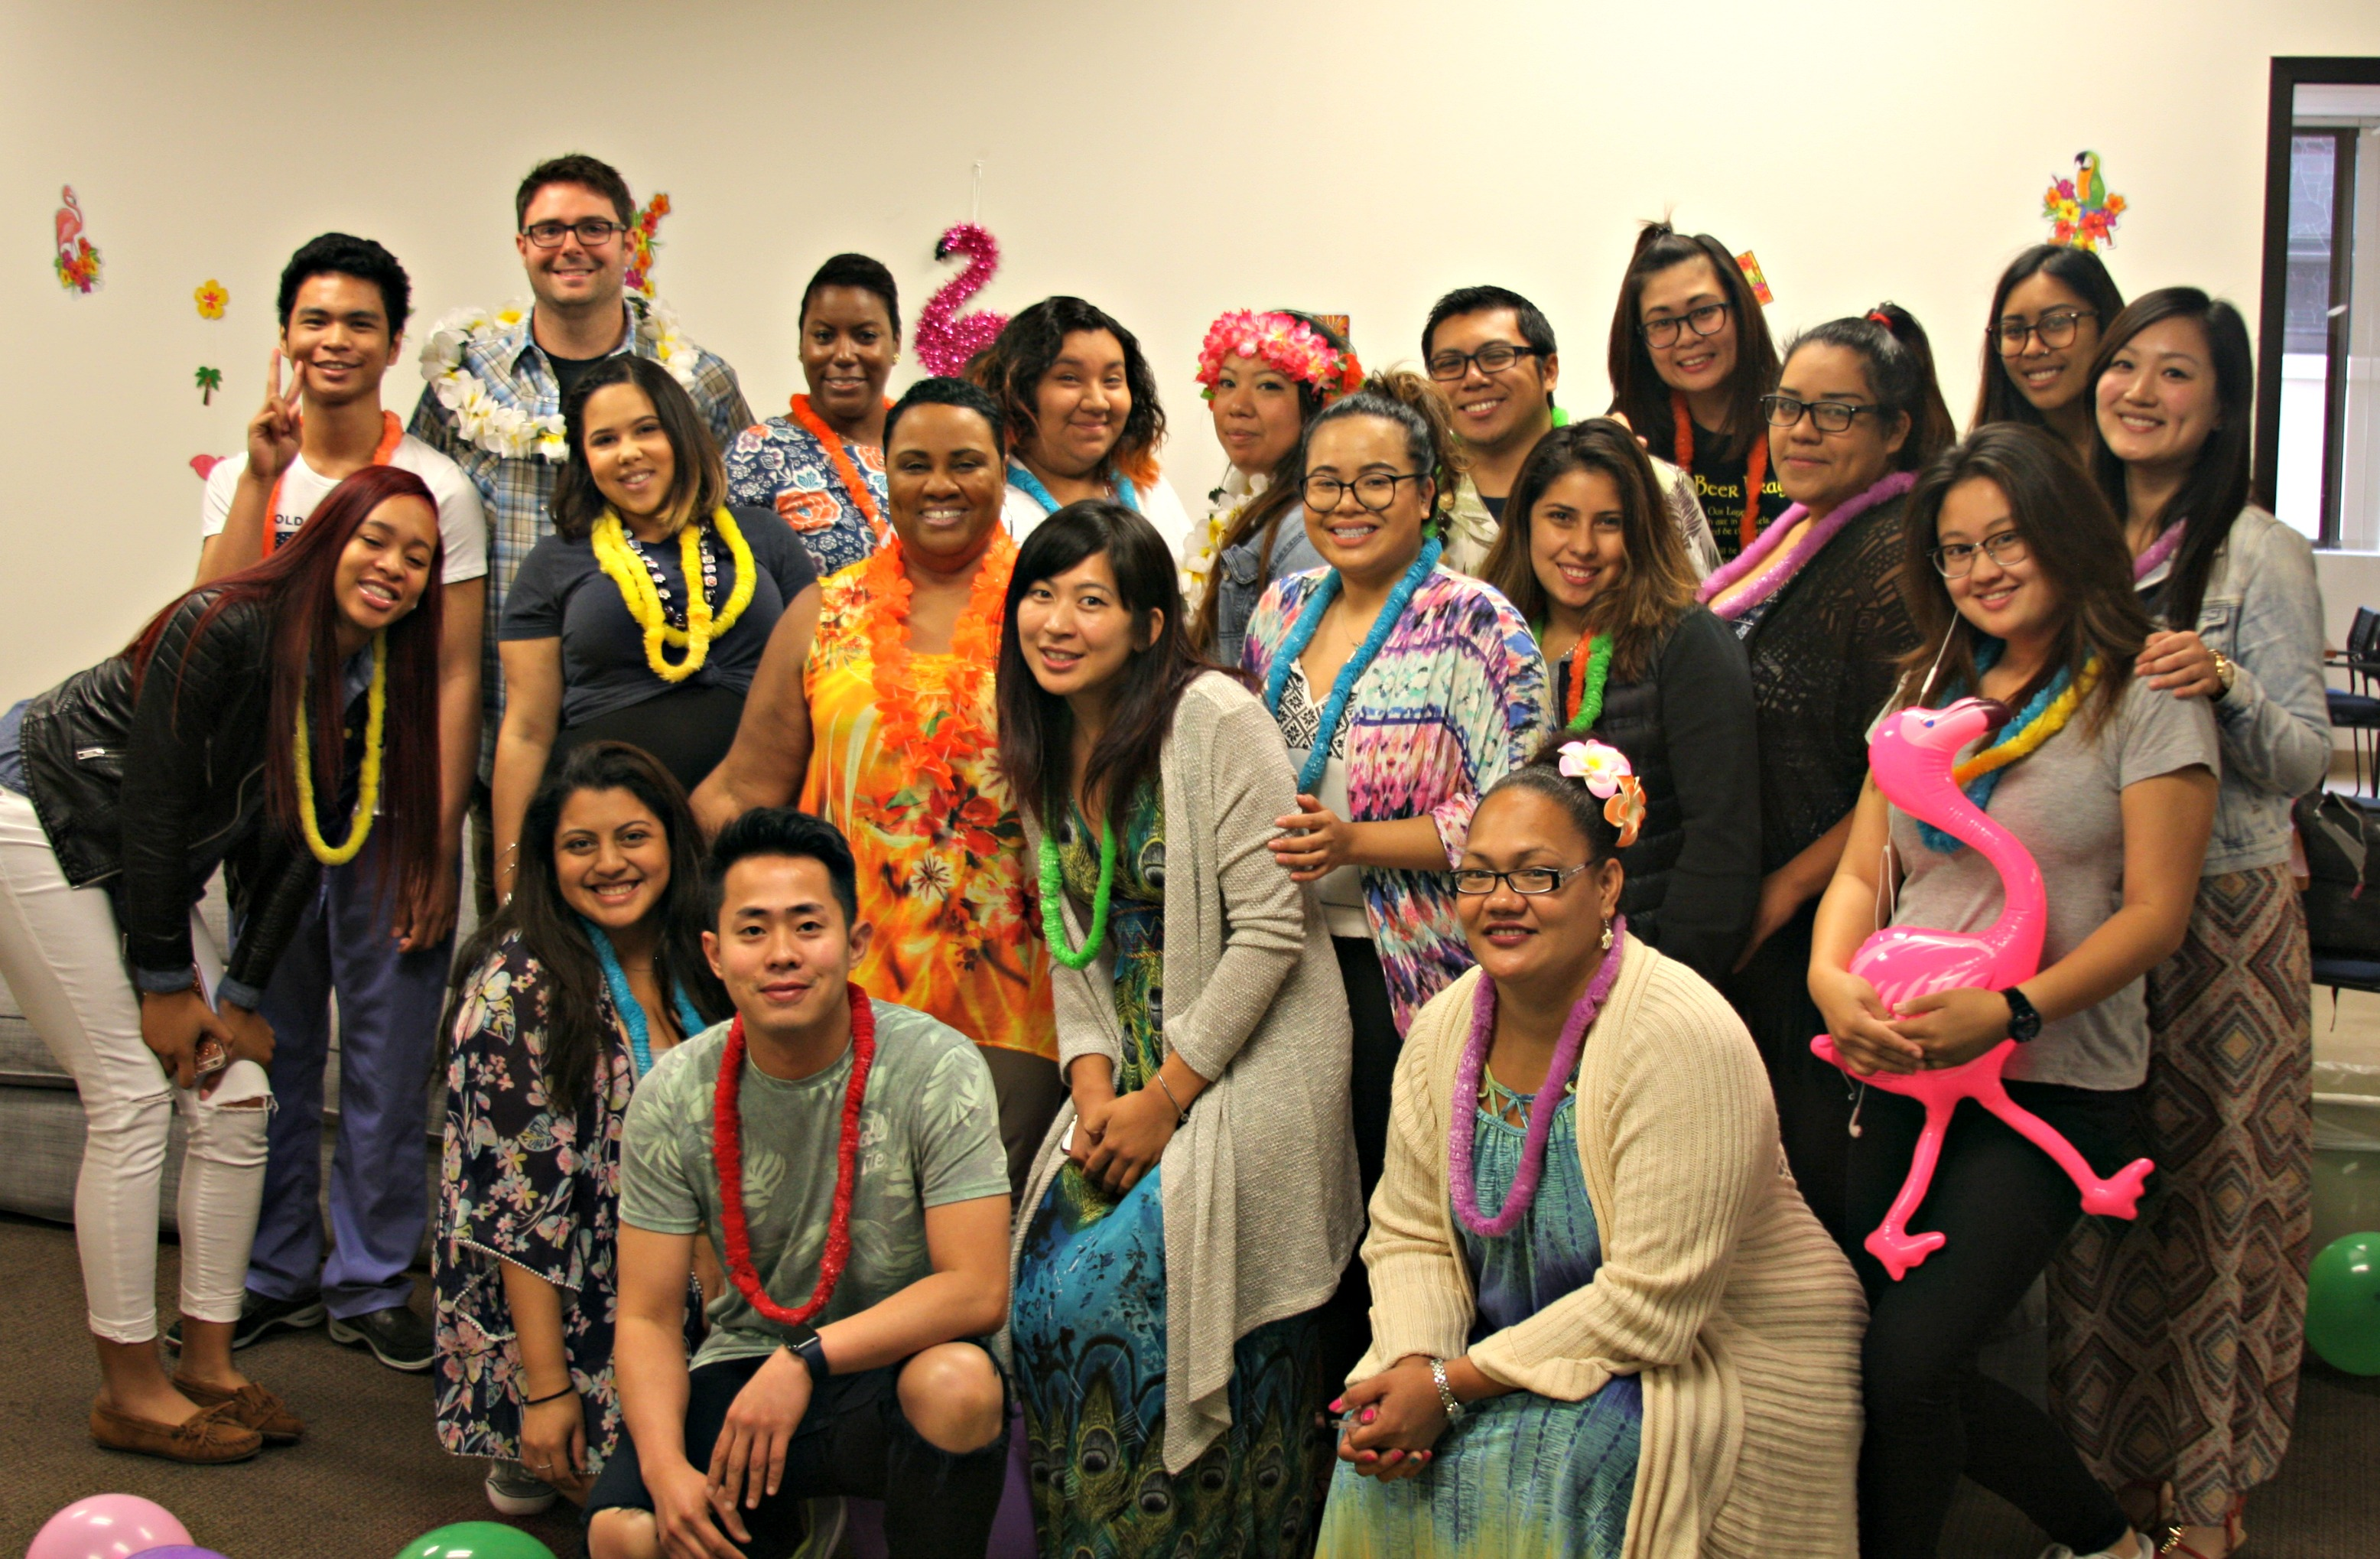 Medical assistant students having fun on Hawaii day